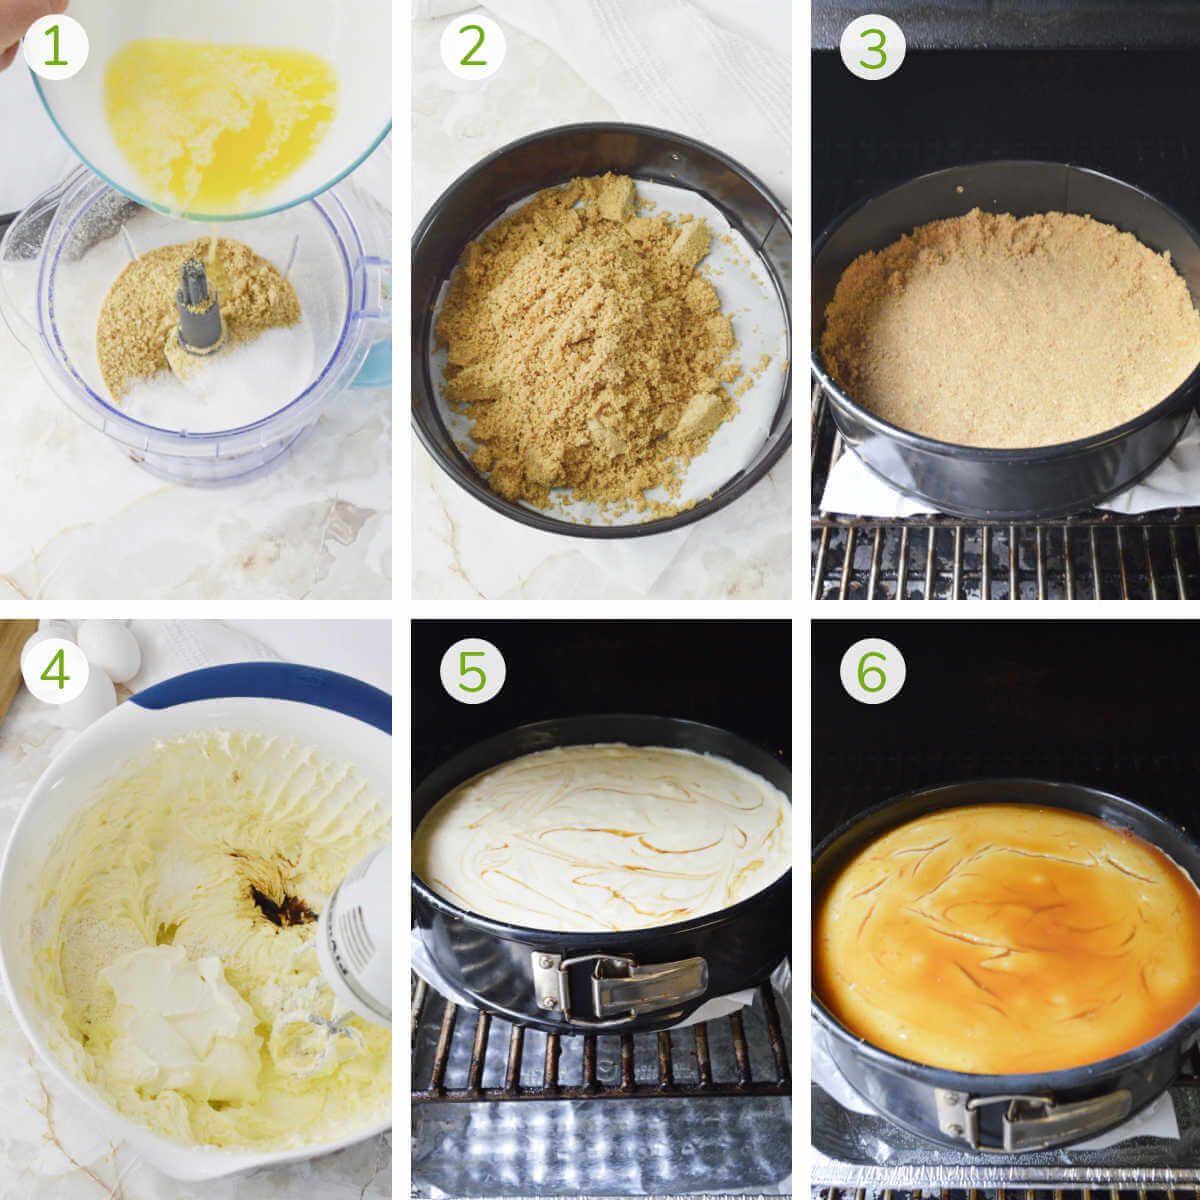 series of process shots showing how to make the crust, smoke it, and then fill with a creamy caramel filling.